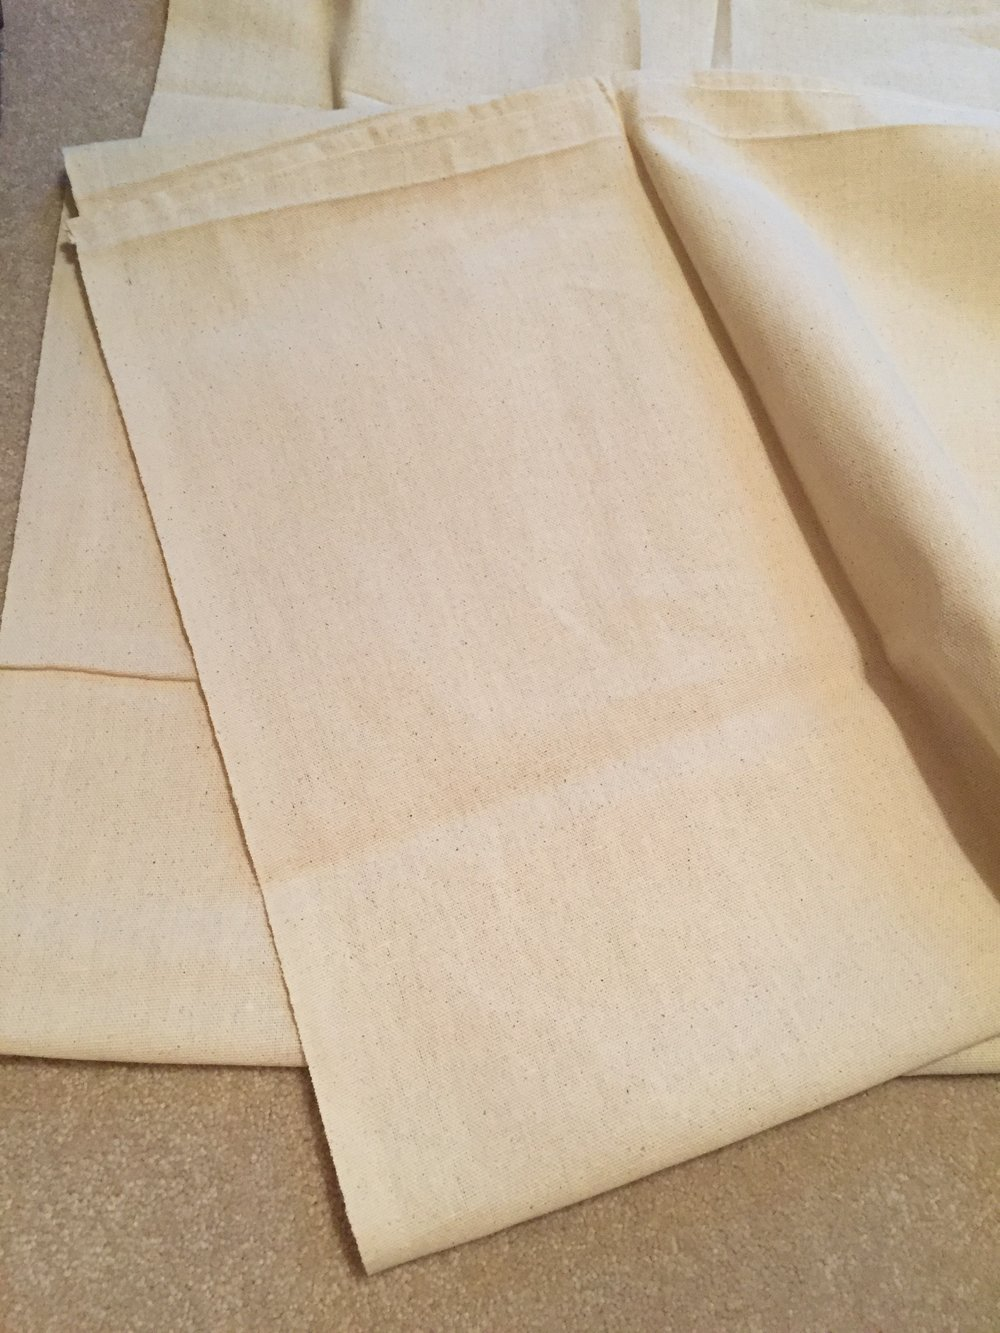 drop-cloth-fold.jpg